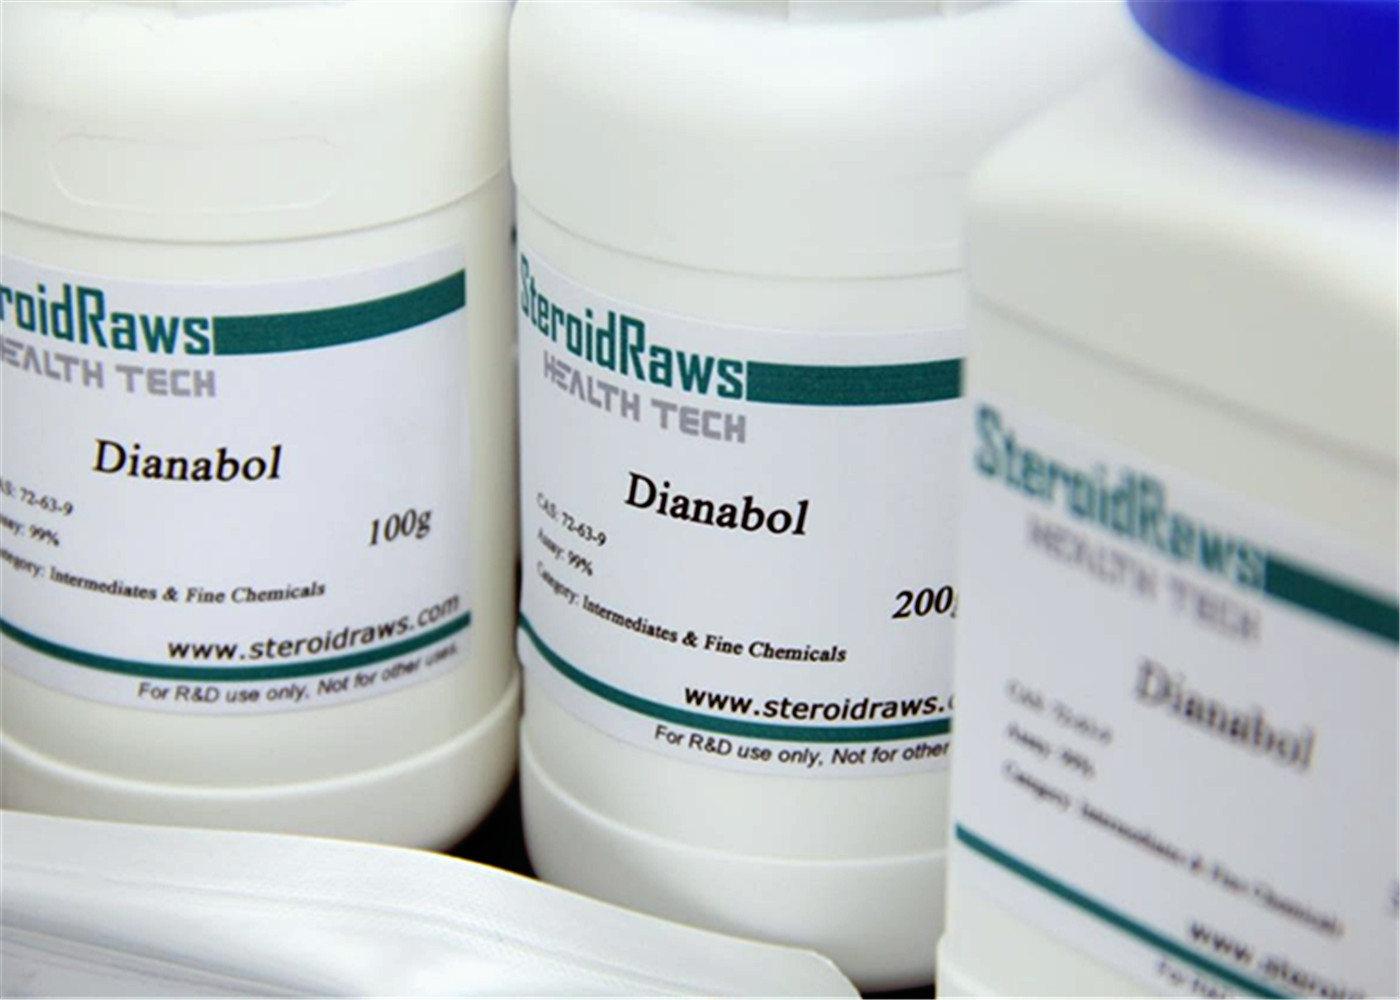 Dianabol / Methandrostenolone Bulking Cycle Steroids Natural Growth Hormone Supplements